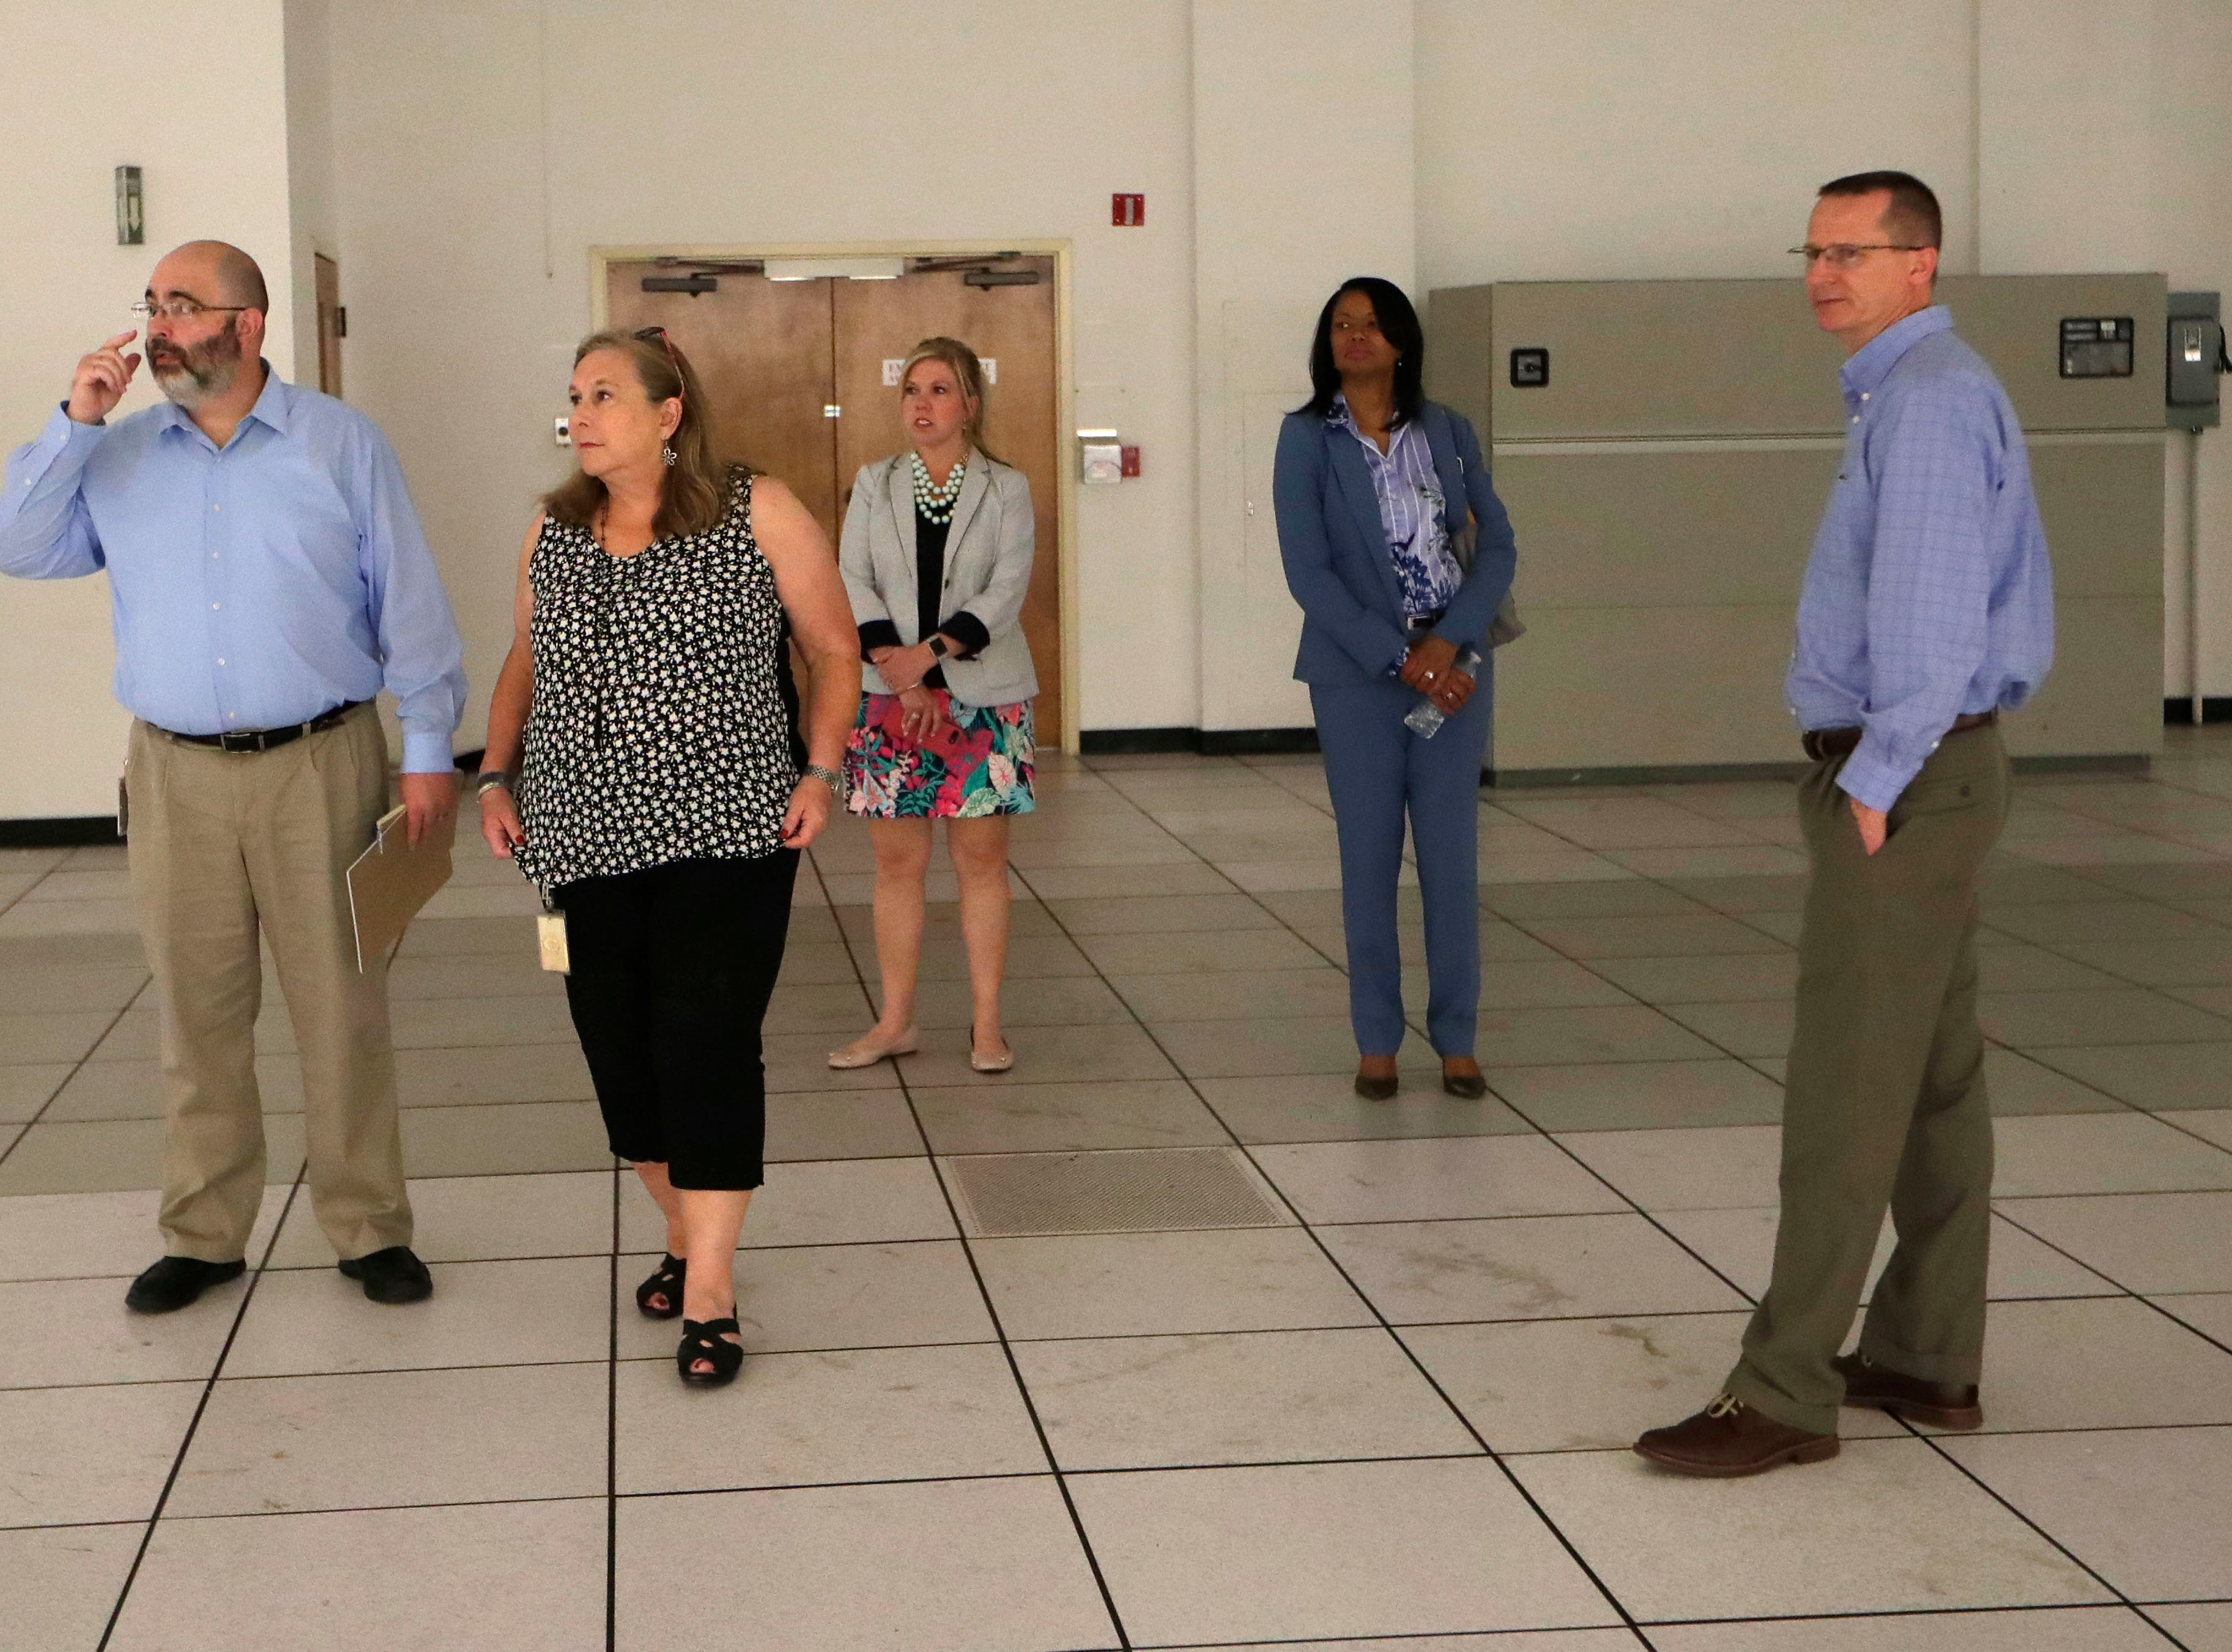 Robert Culverhouse, who works with the city's real estate department, left, Judy Donahue, who works with the city's real estate department, Alison Faris, director of communications for the city of Tallahassee, Cassandra Jackson, city attorney, and Wayne Tedder, assistant city manager, stand in a vacant office space during a tour of the Northwood Centre Wednesday, May 8, 2019.